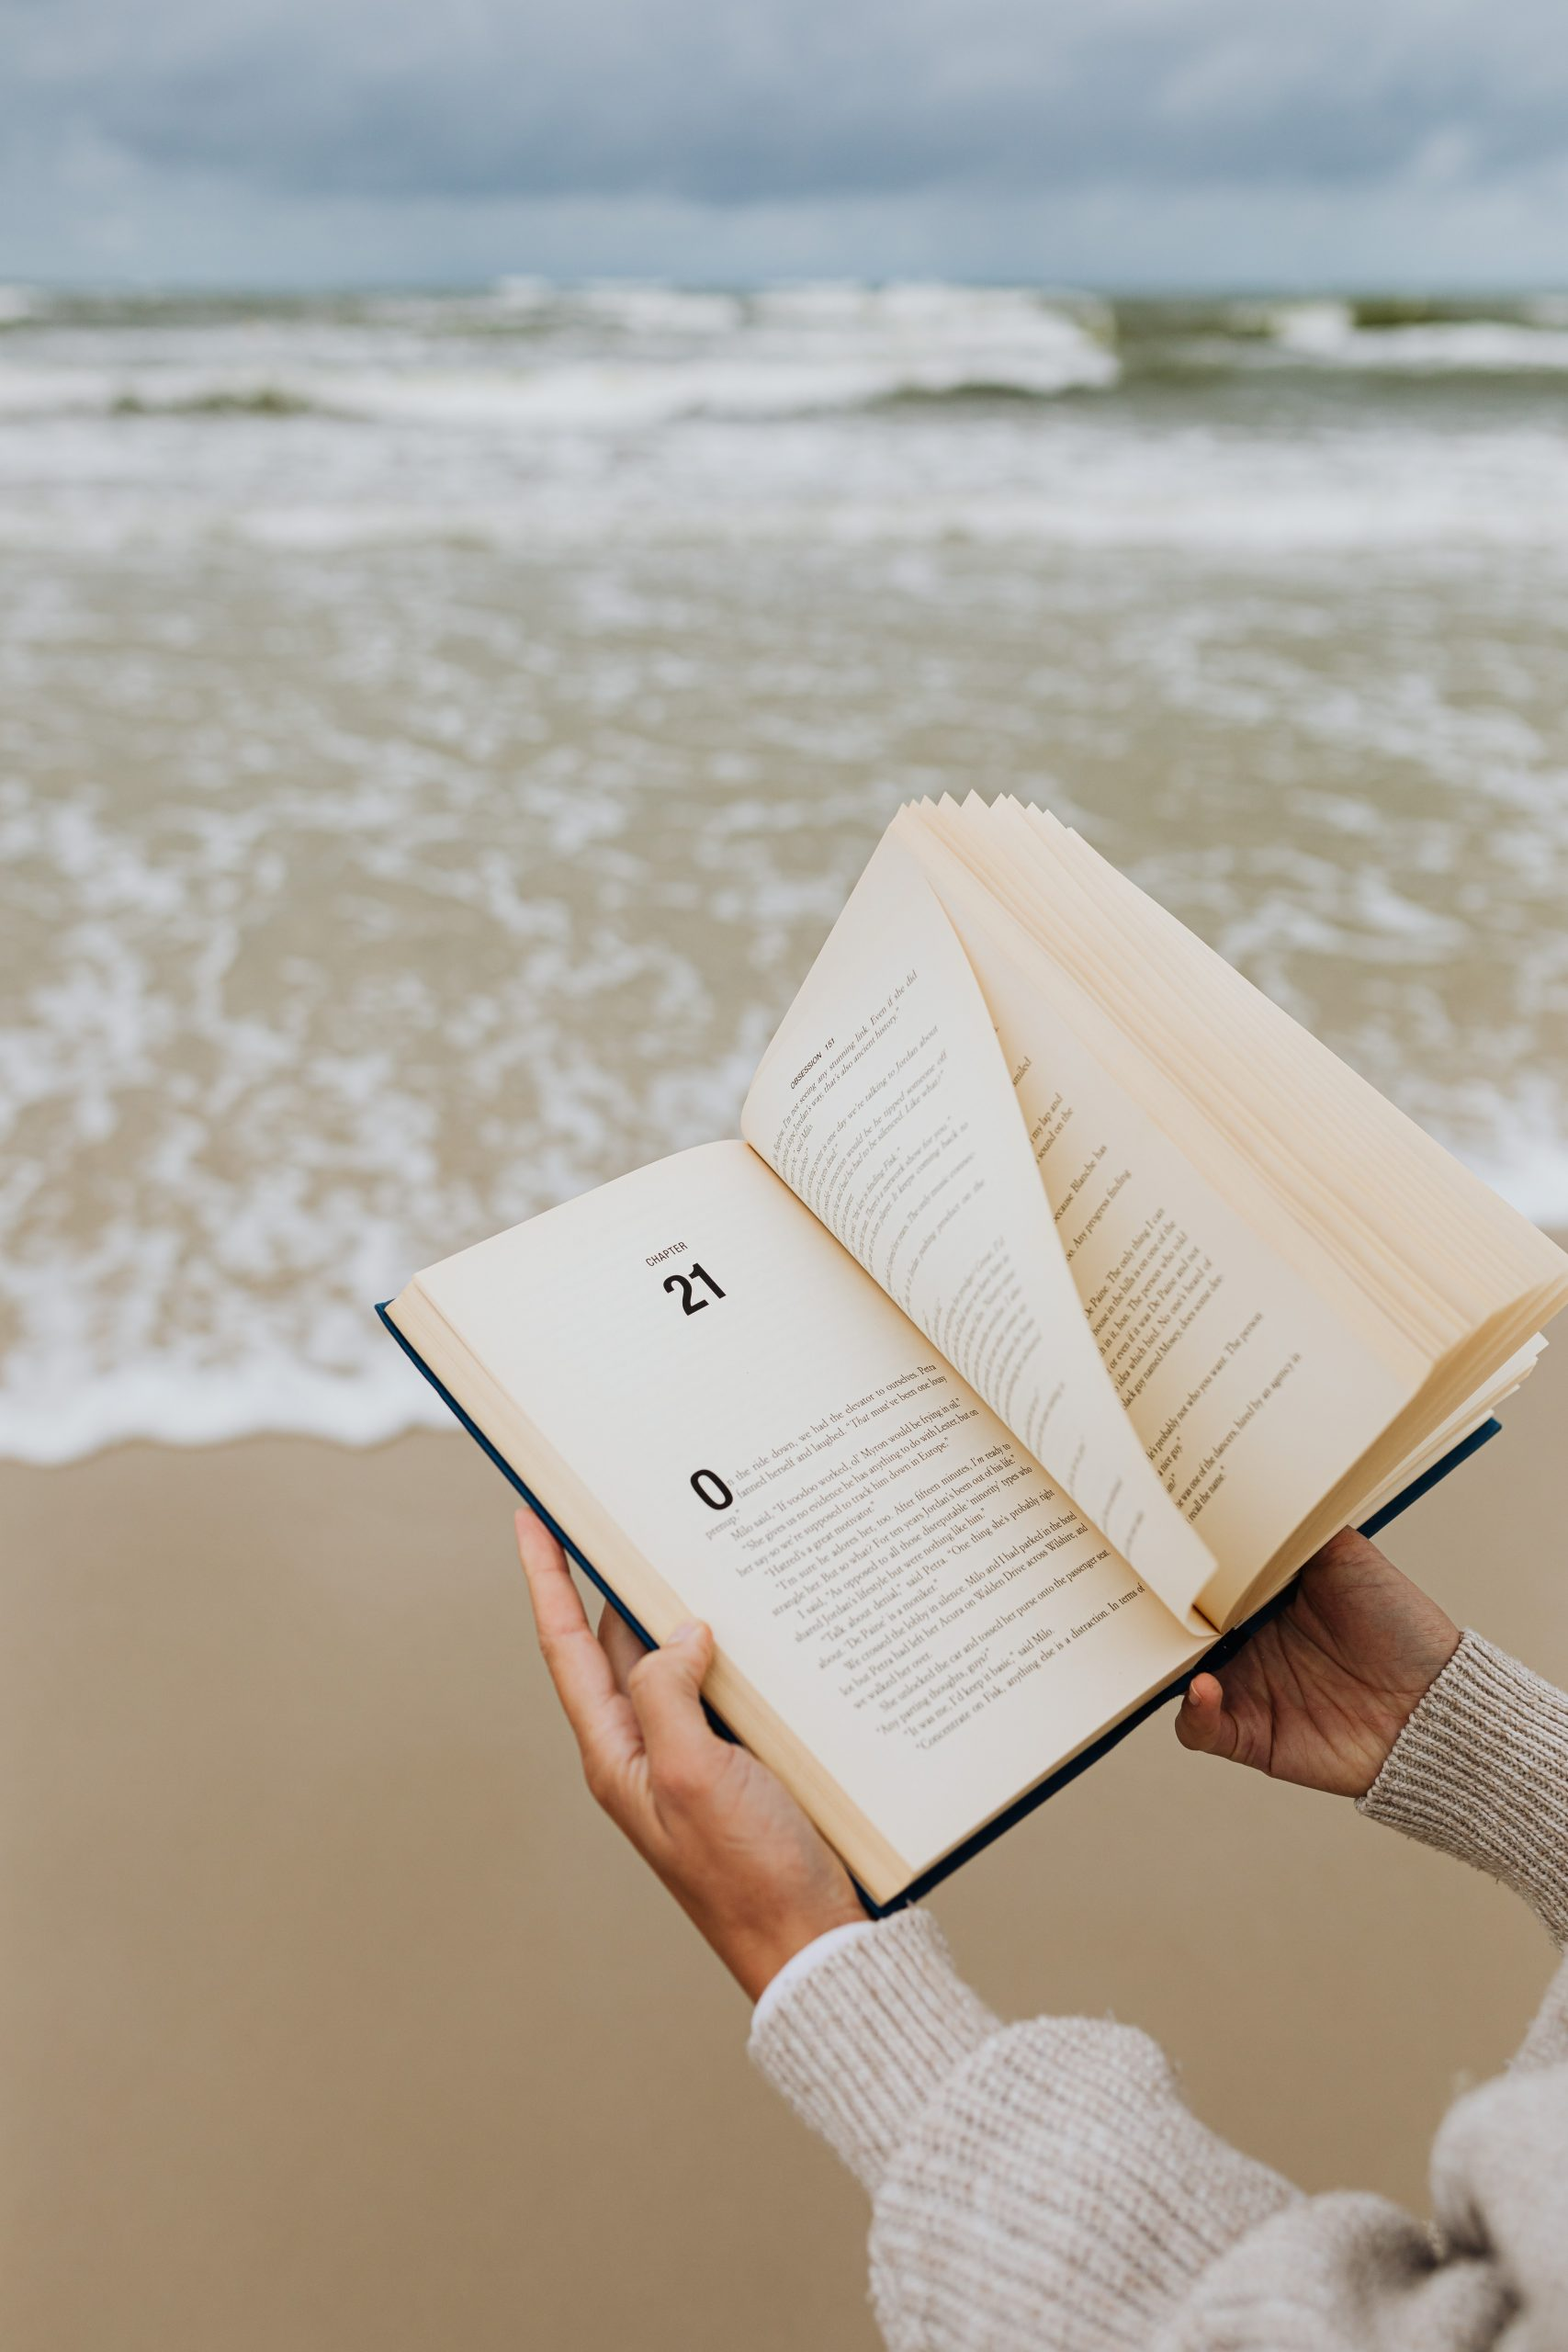 A book with ocean waves in the background